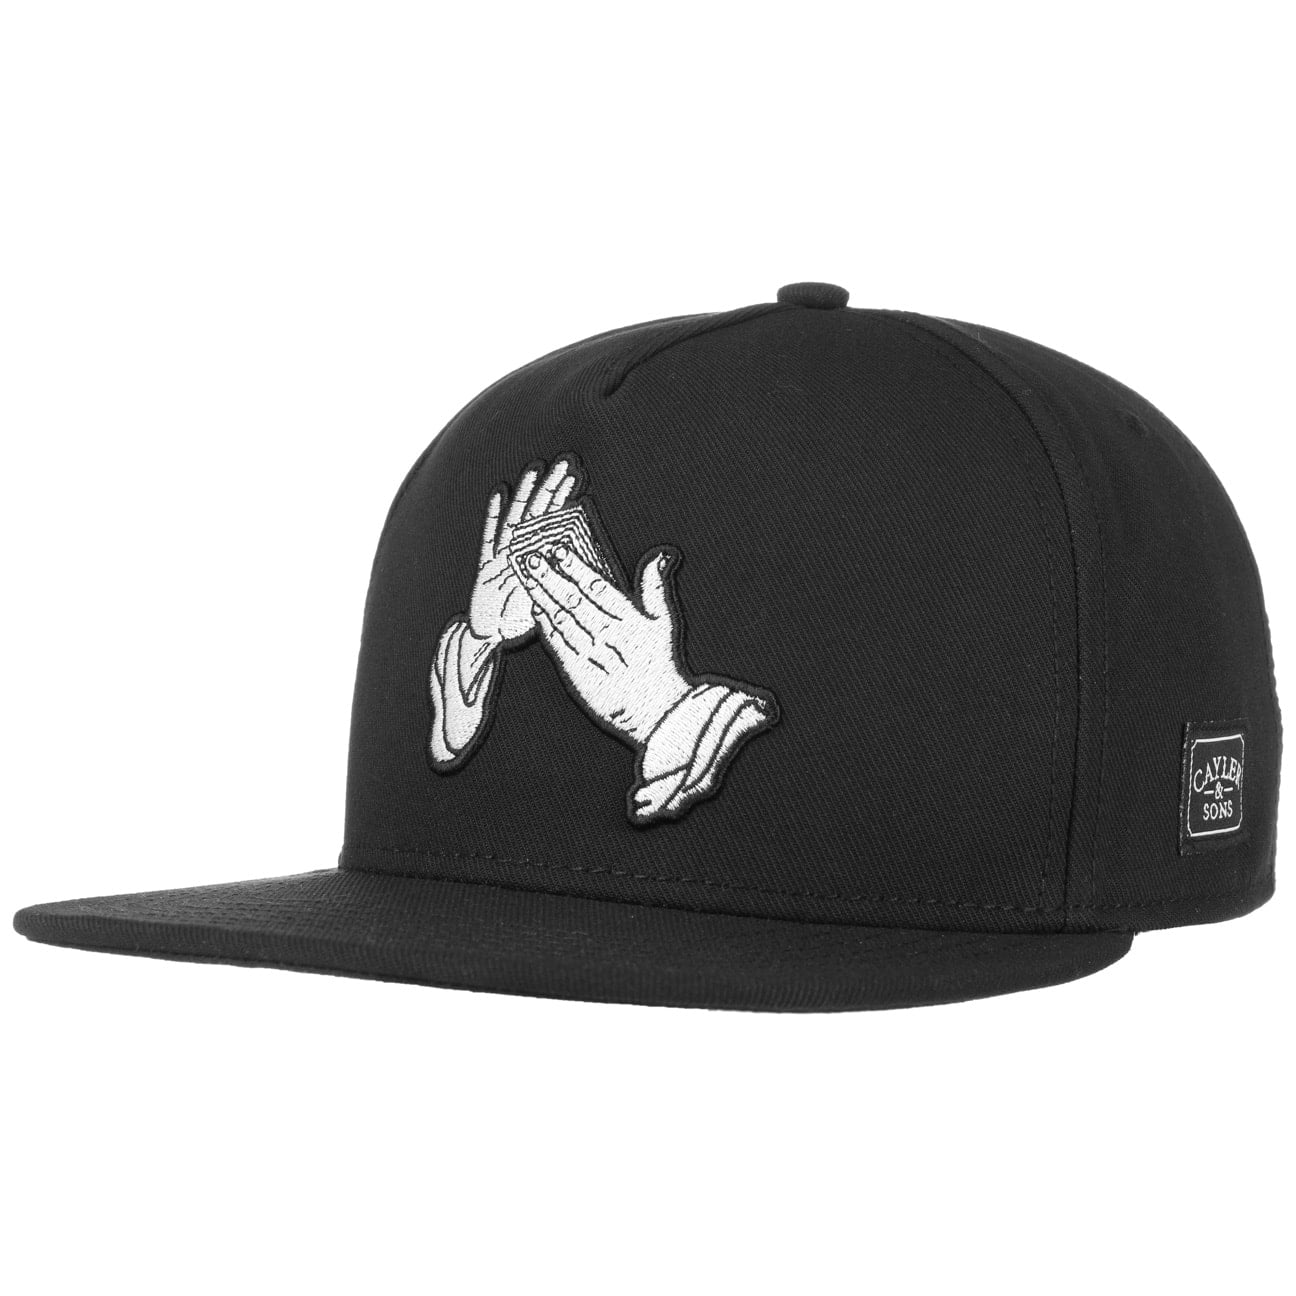 Gorra 8th Day Snapback by Cayler & Sons  gorra de baseball